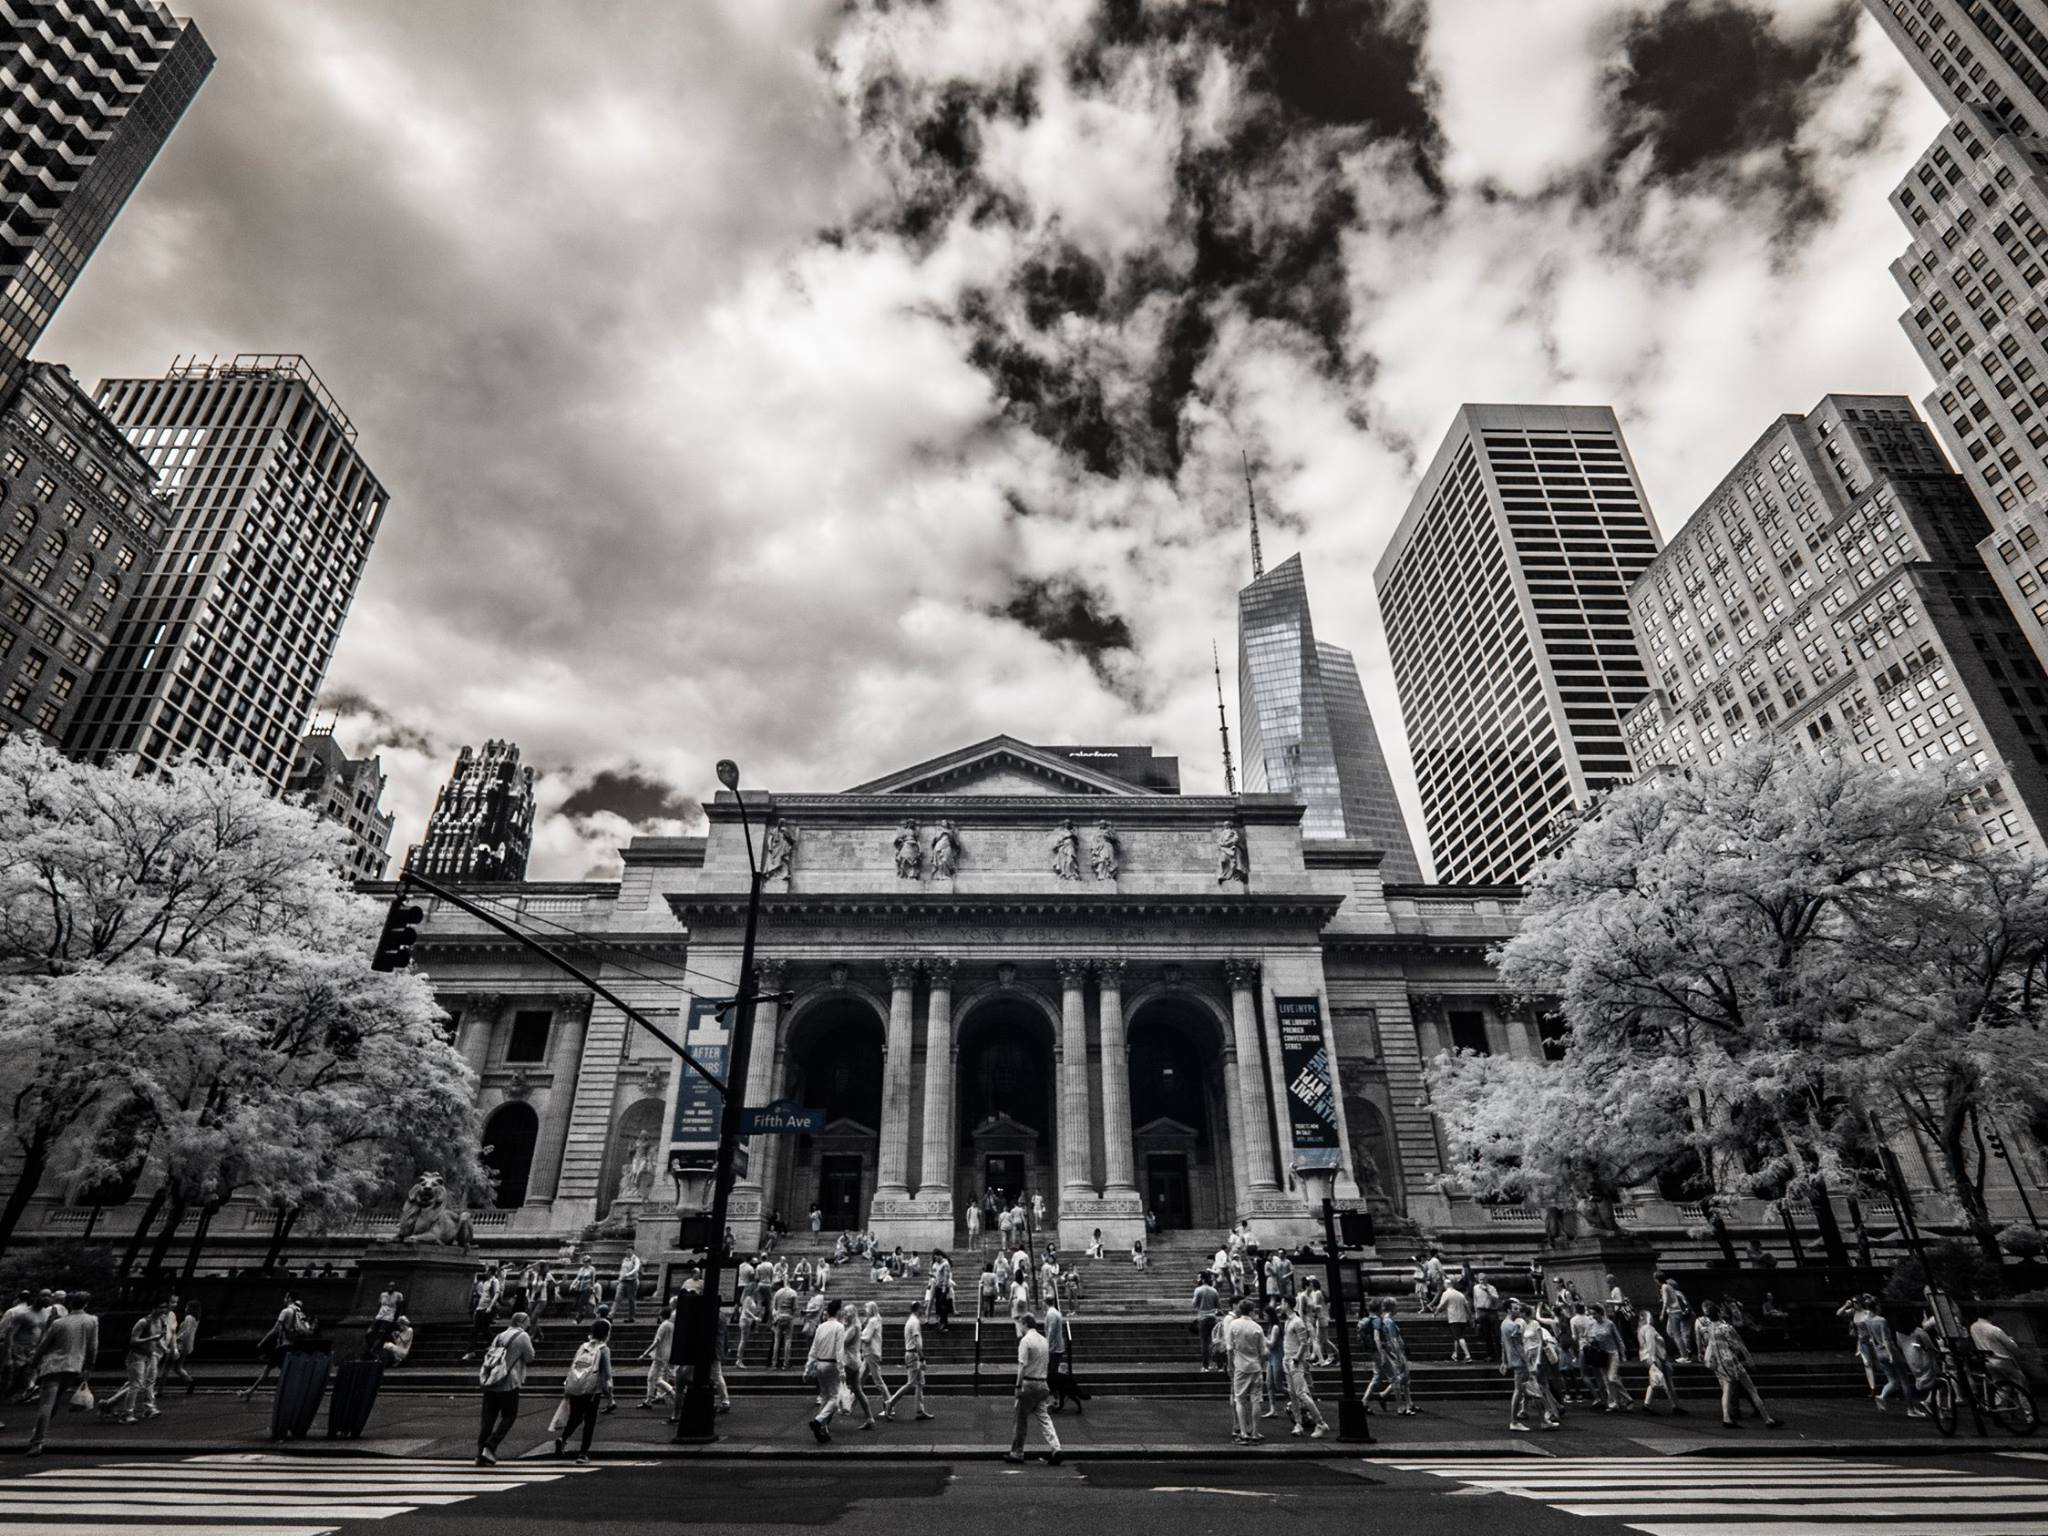 New York Public Library, 8mm